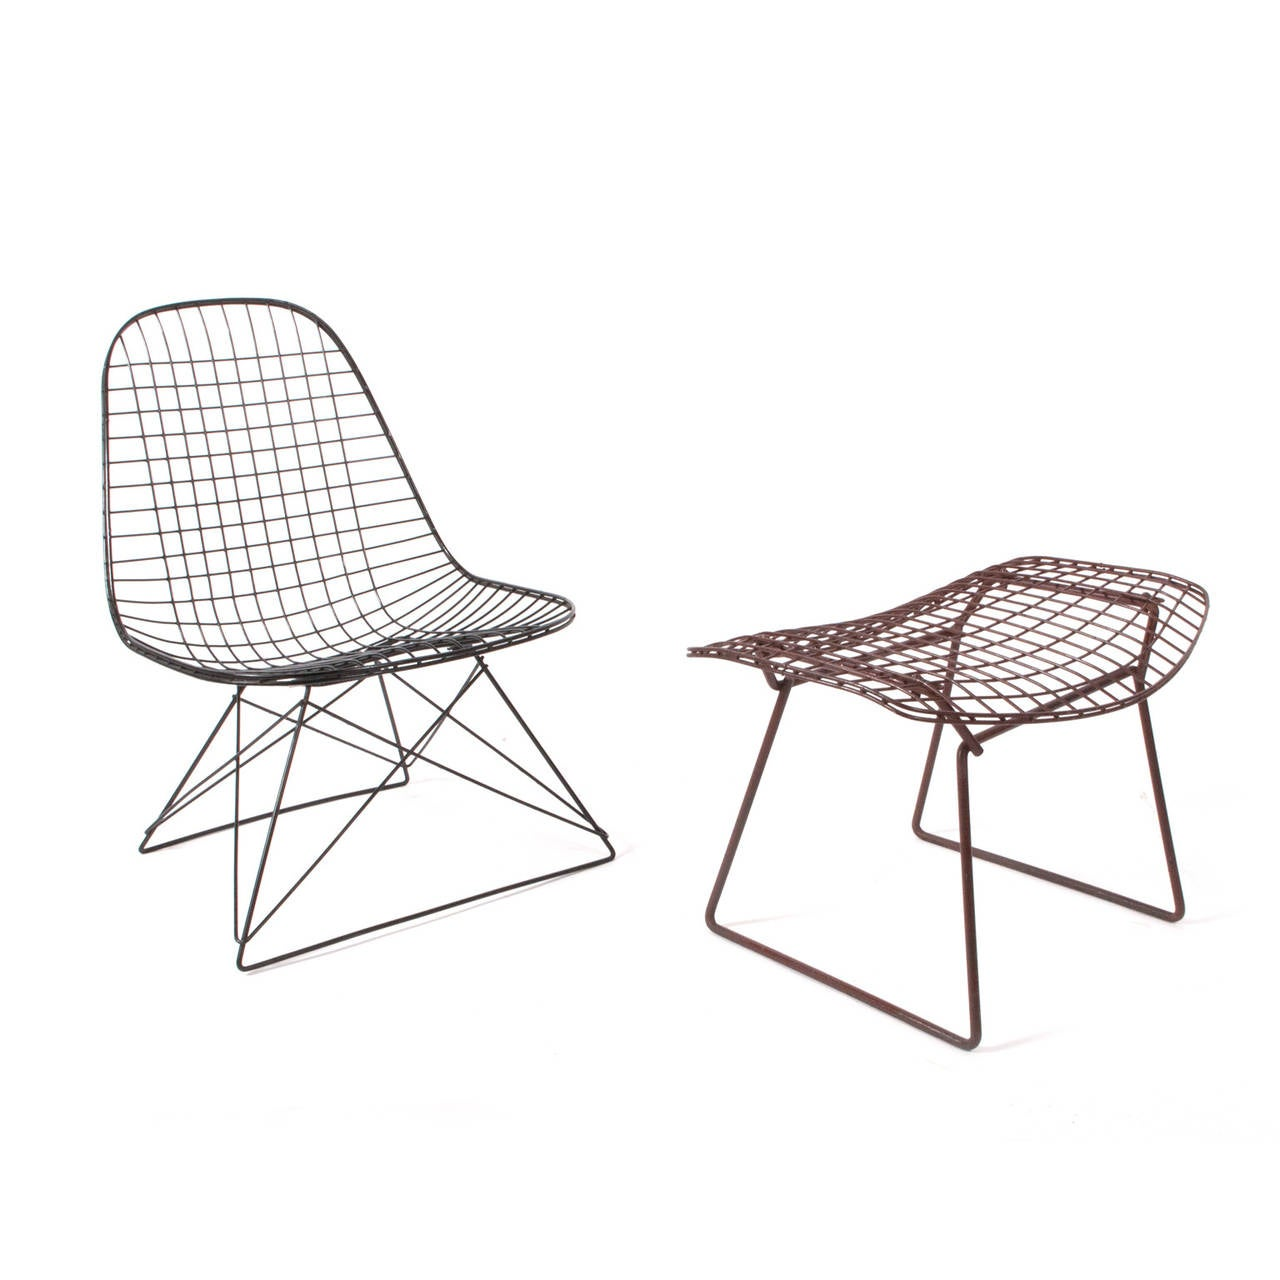 Black wire frame in original condition cage base wire lounge chair and original Harry Bertoia stool.